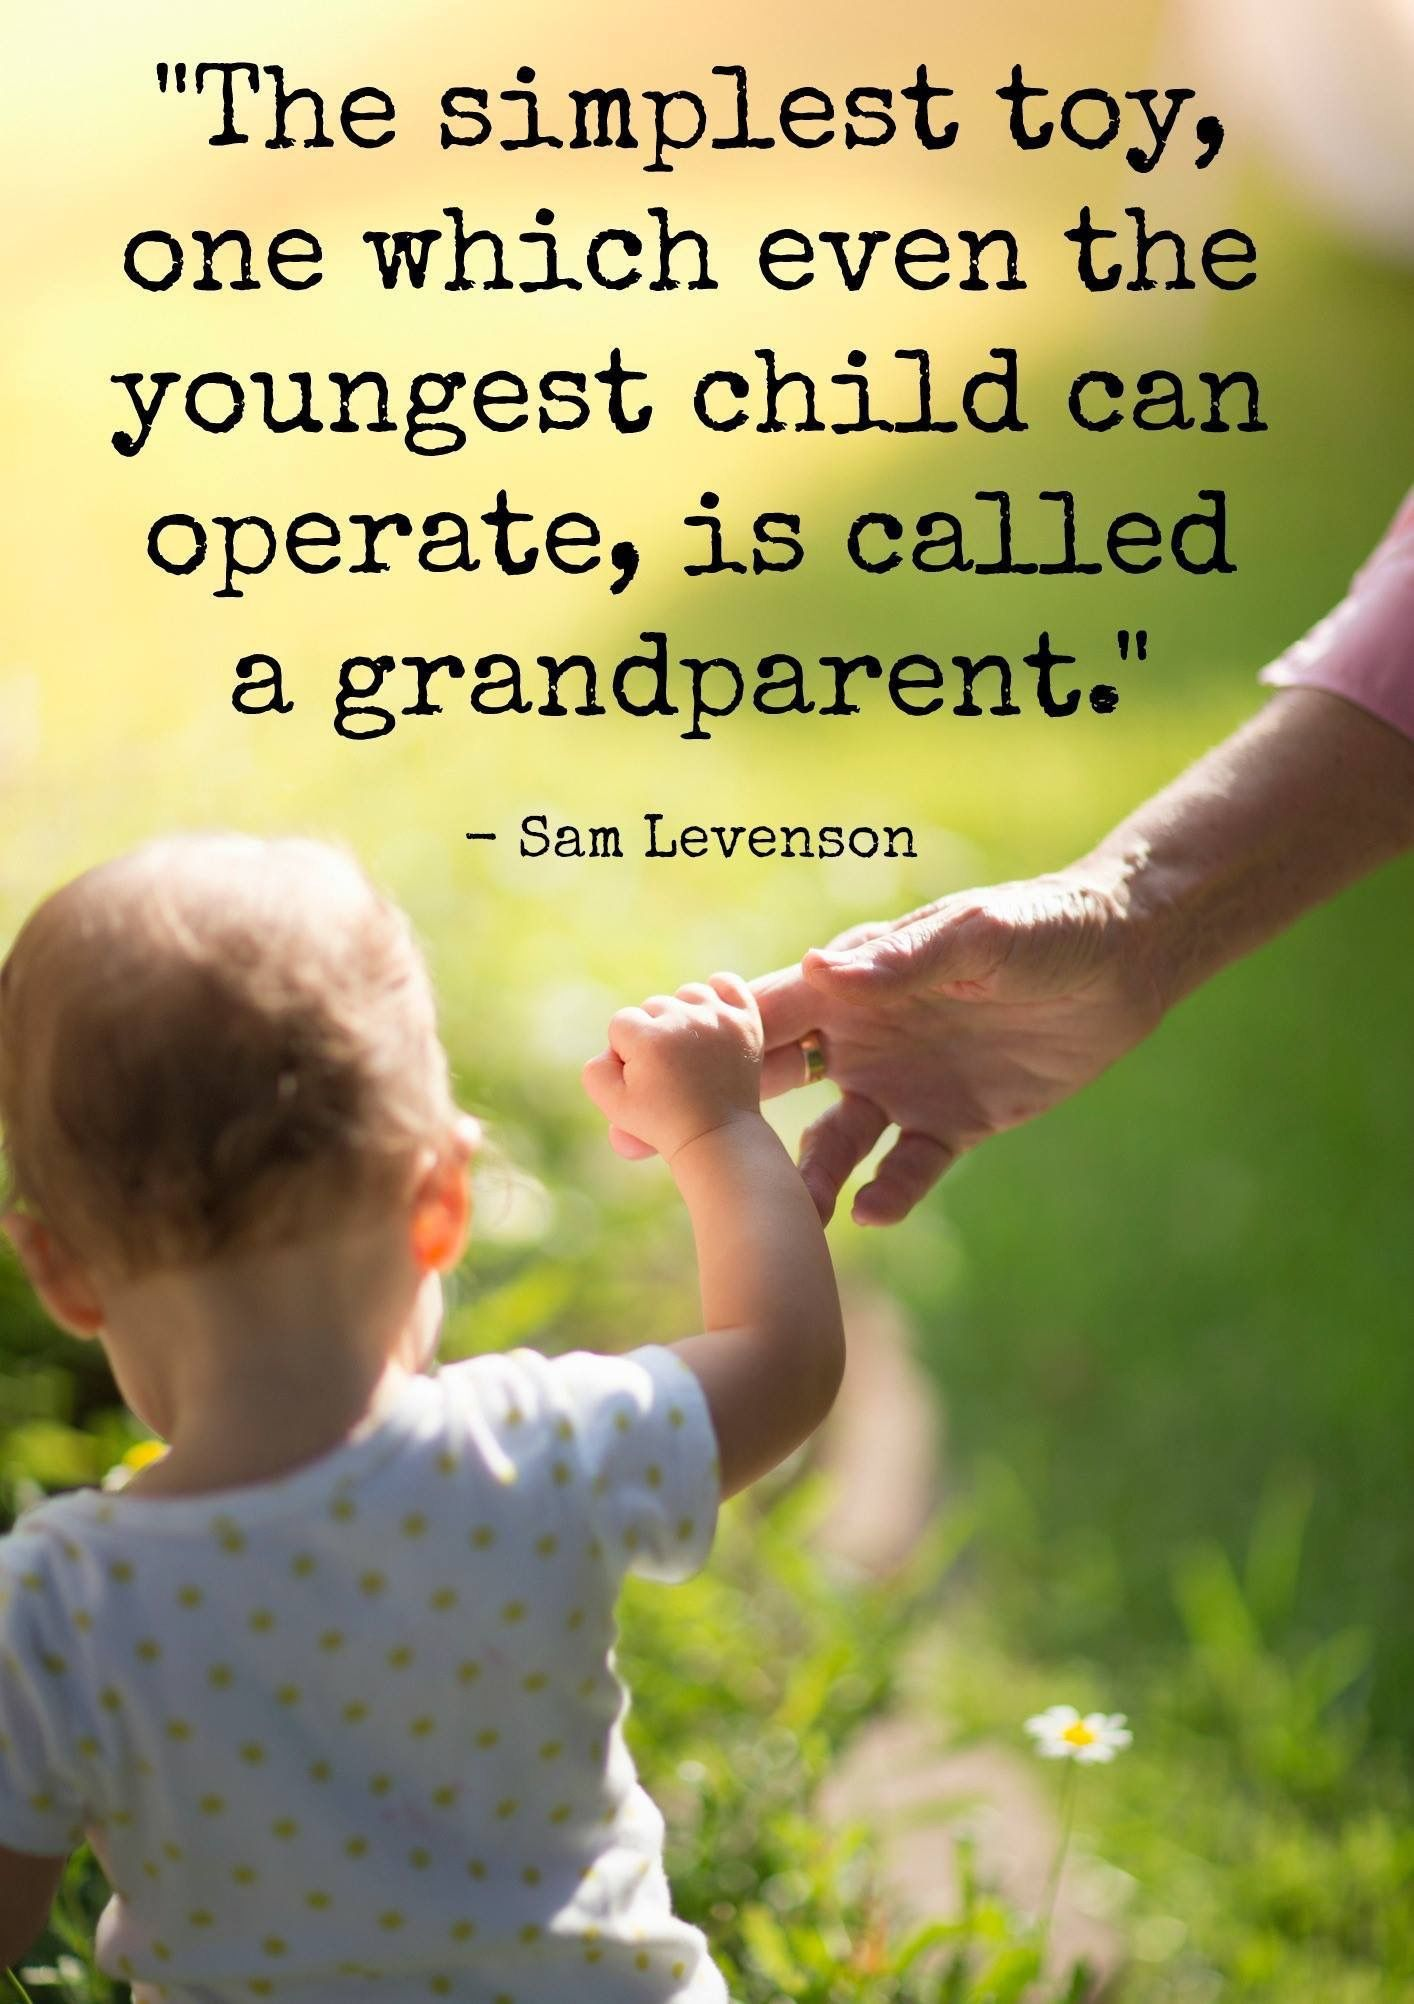 Pin by Elaine Mead on Quotes | Happy grandparents day ...